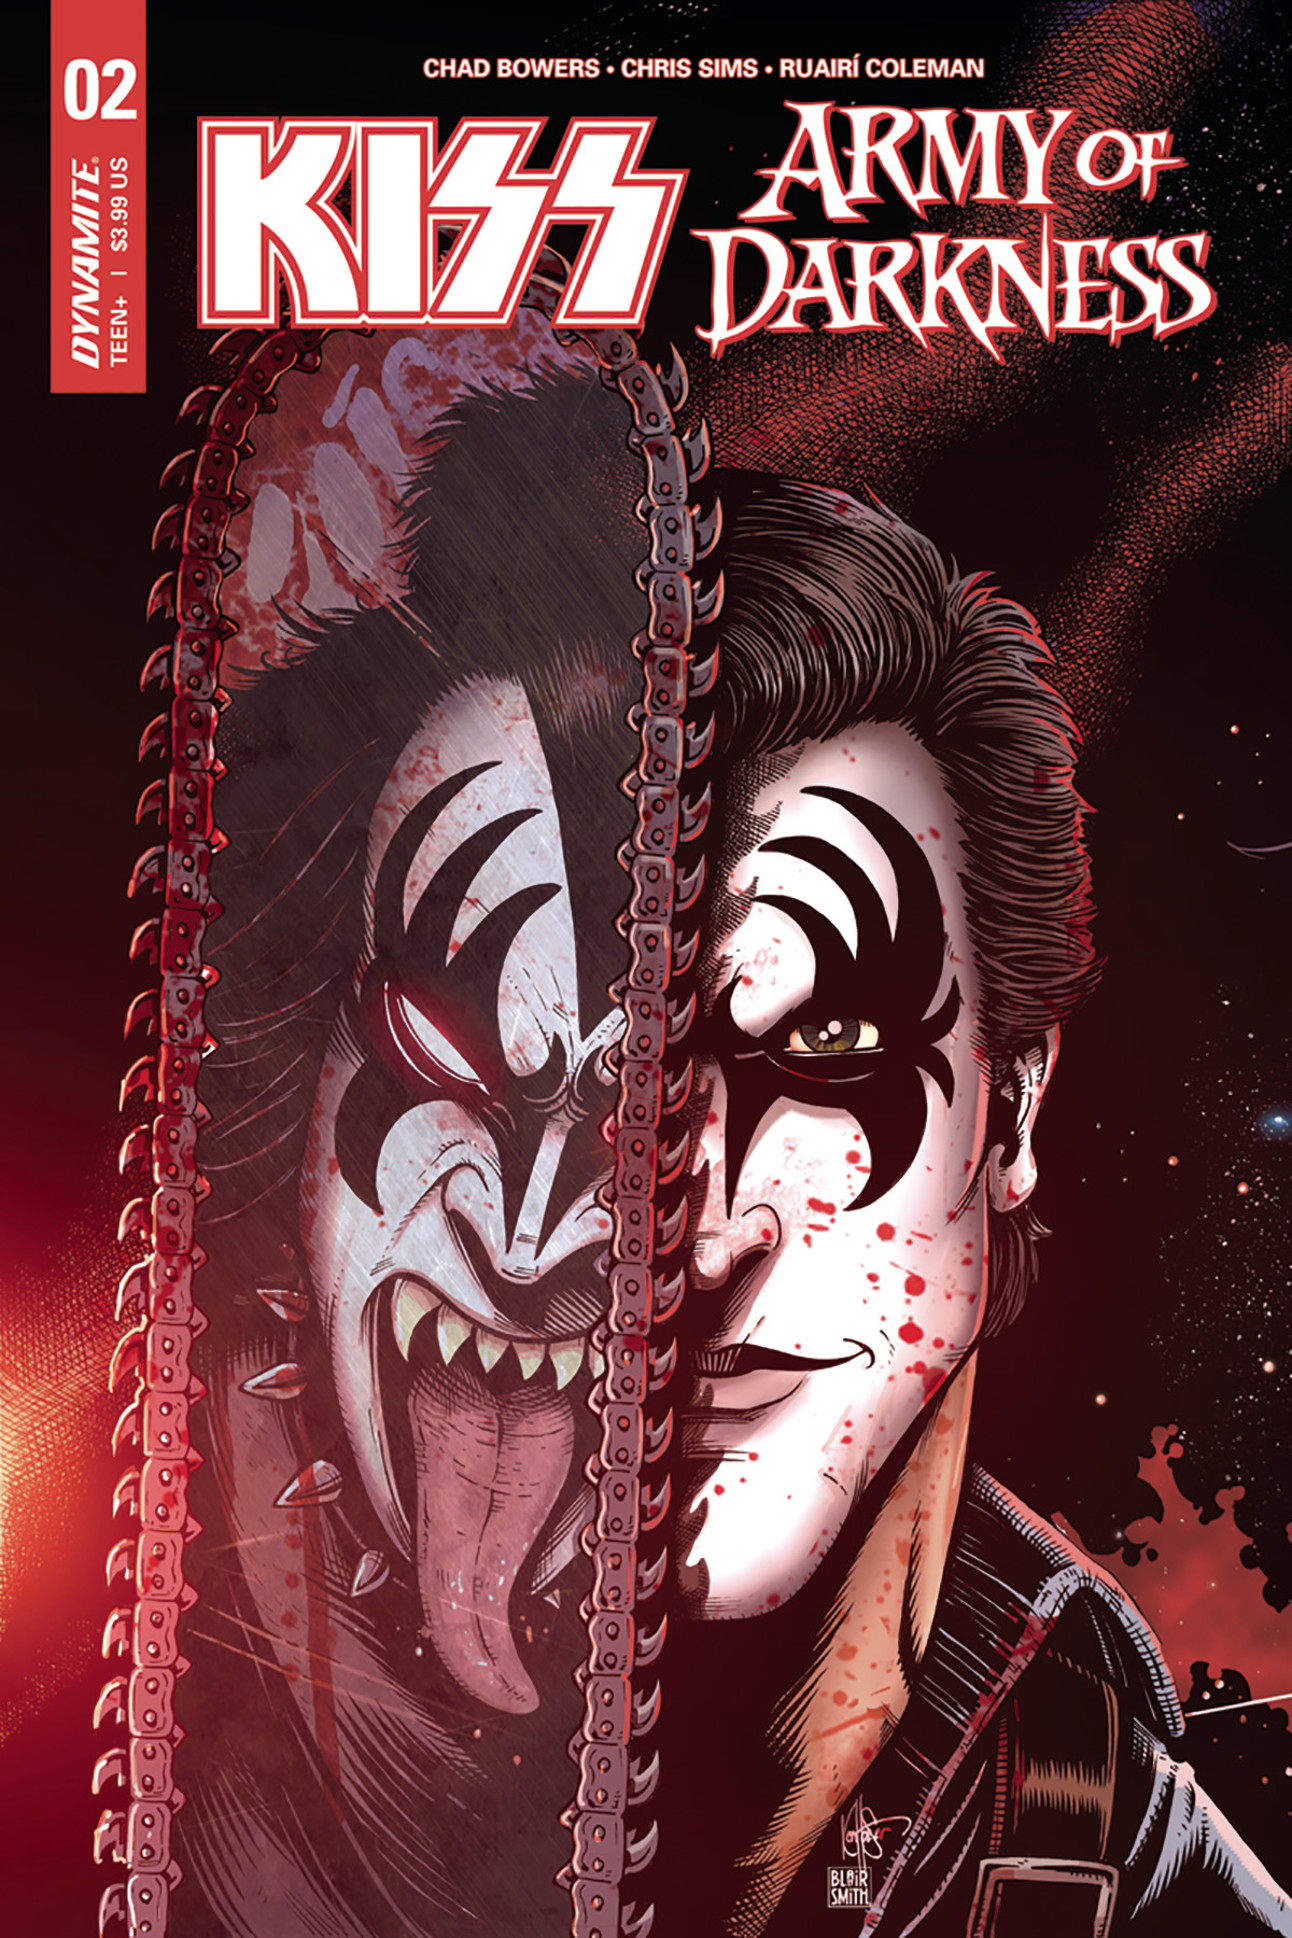 dynamite_kissarmy_of_darkness_2_cover.jpg